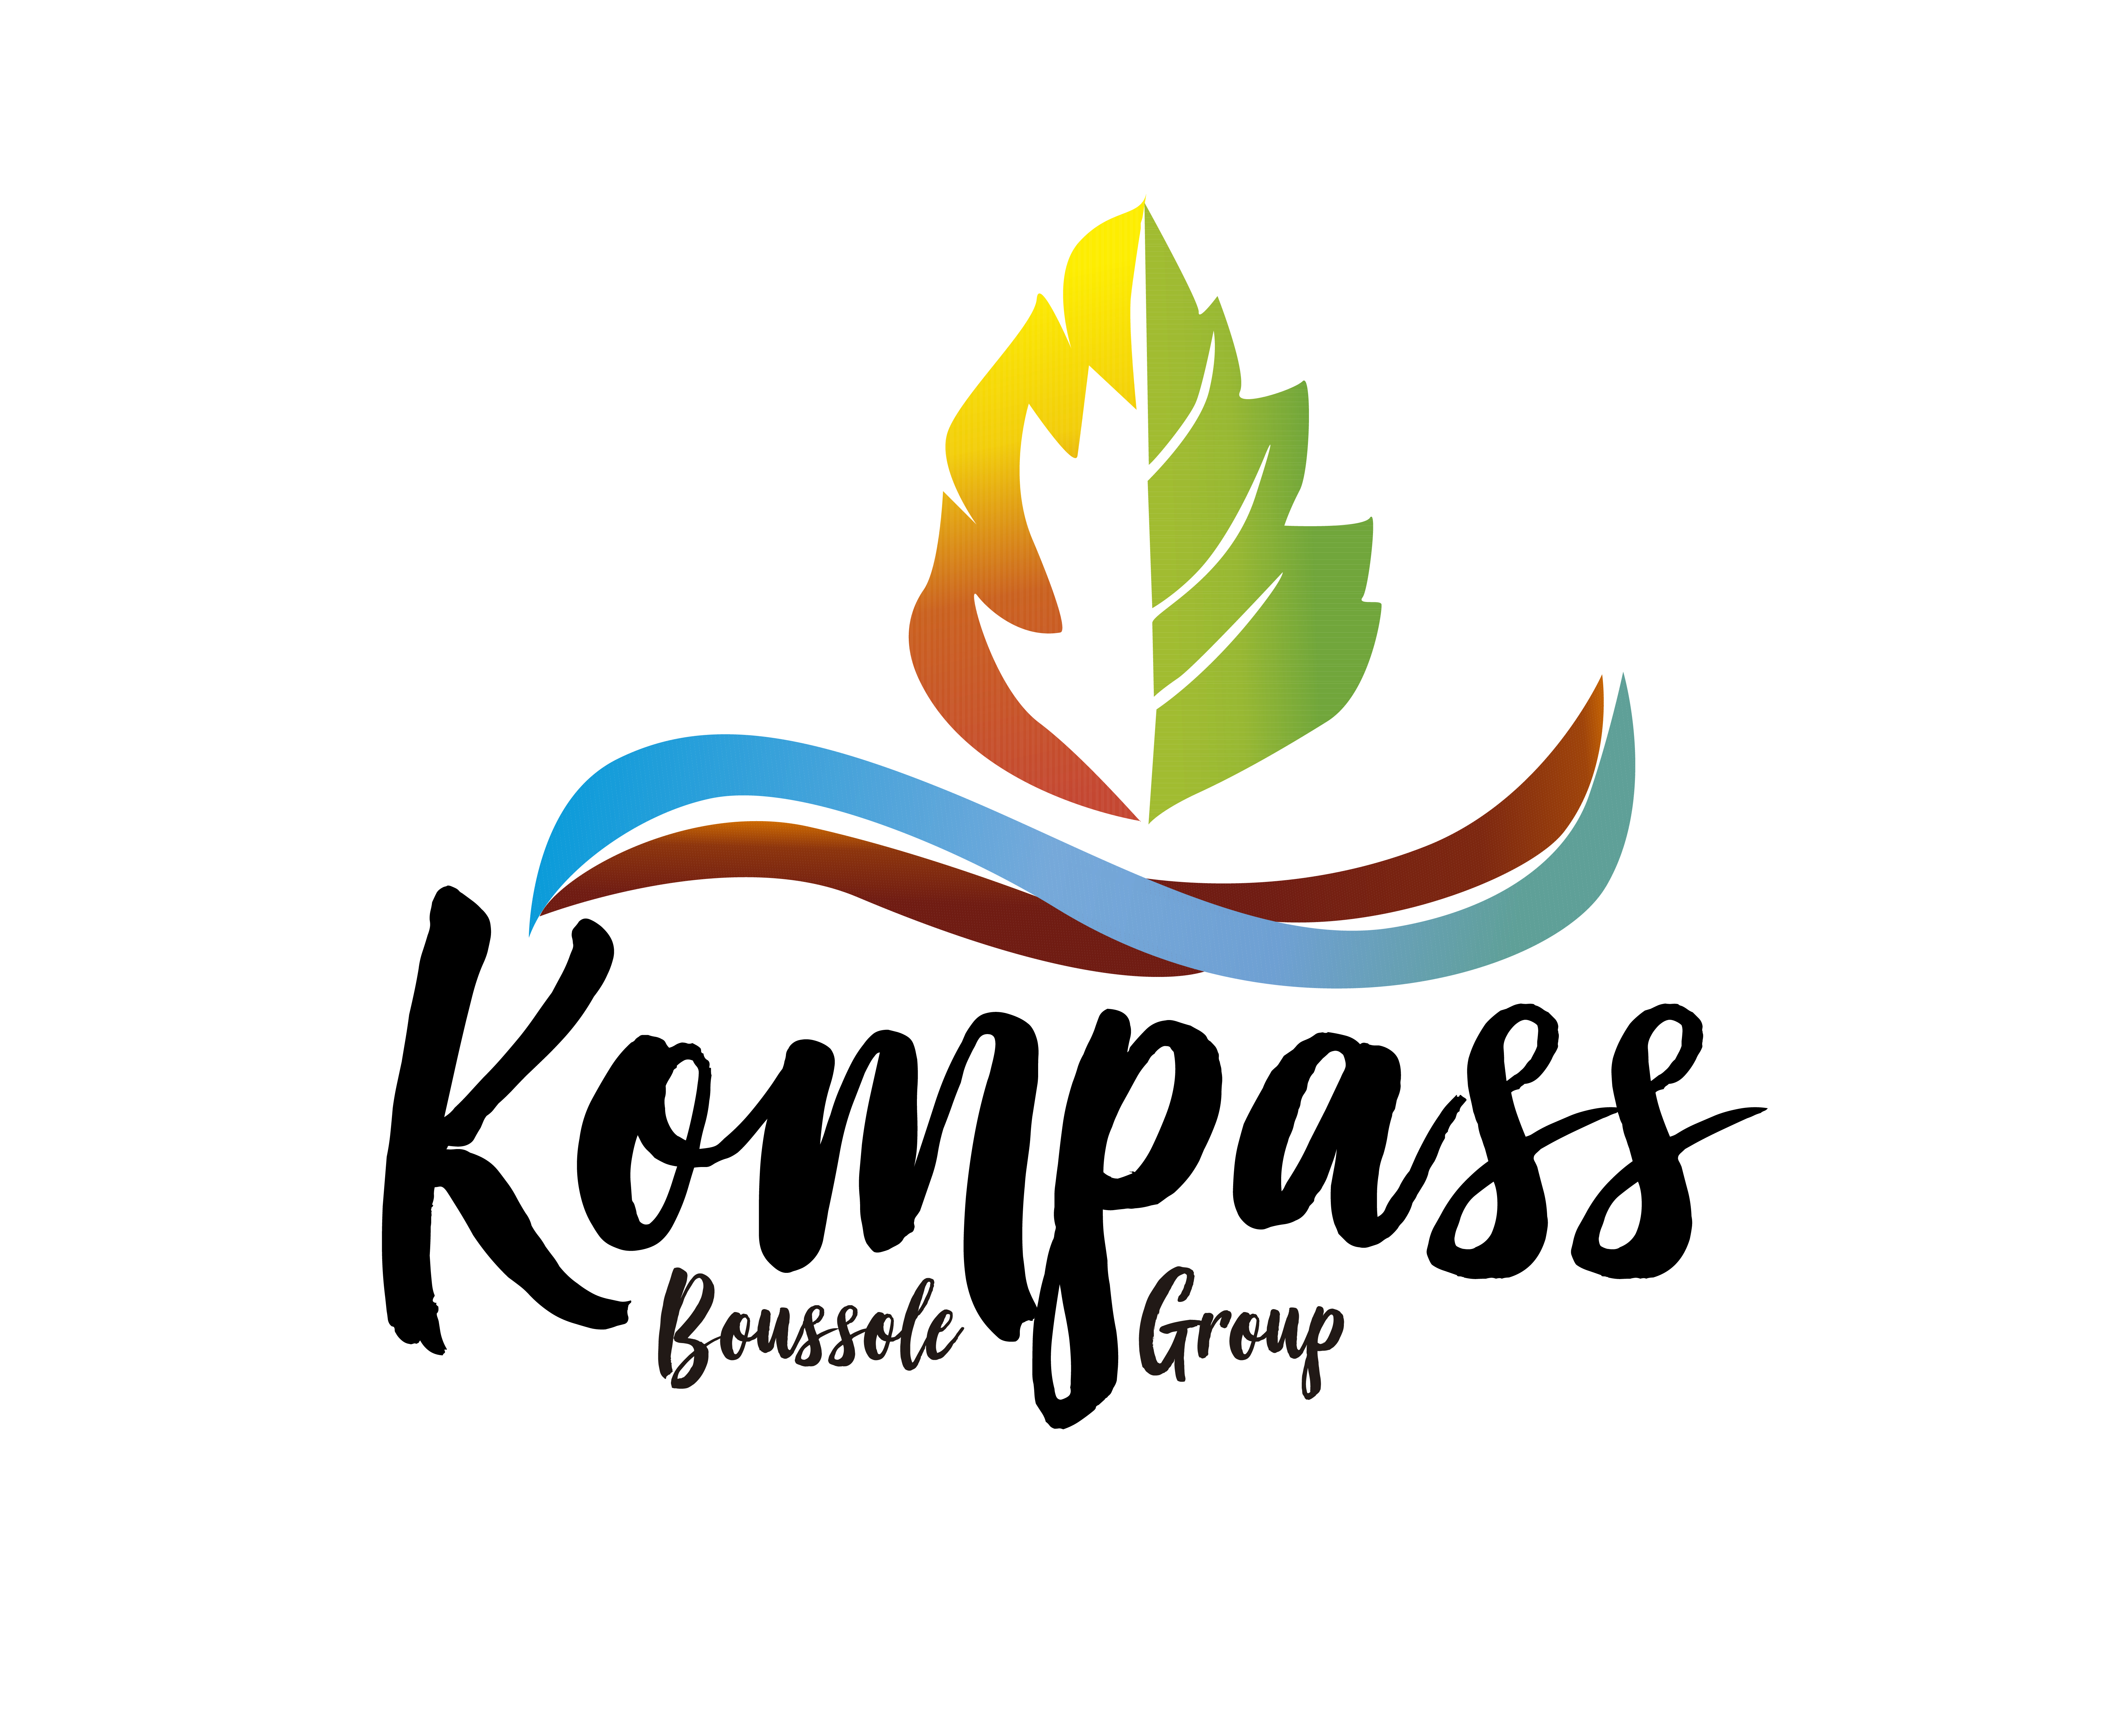 kompass.group